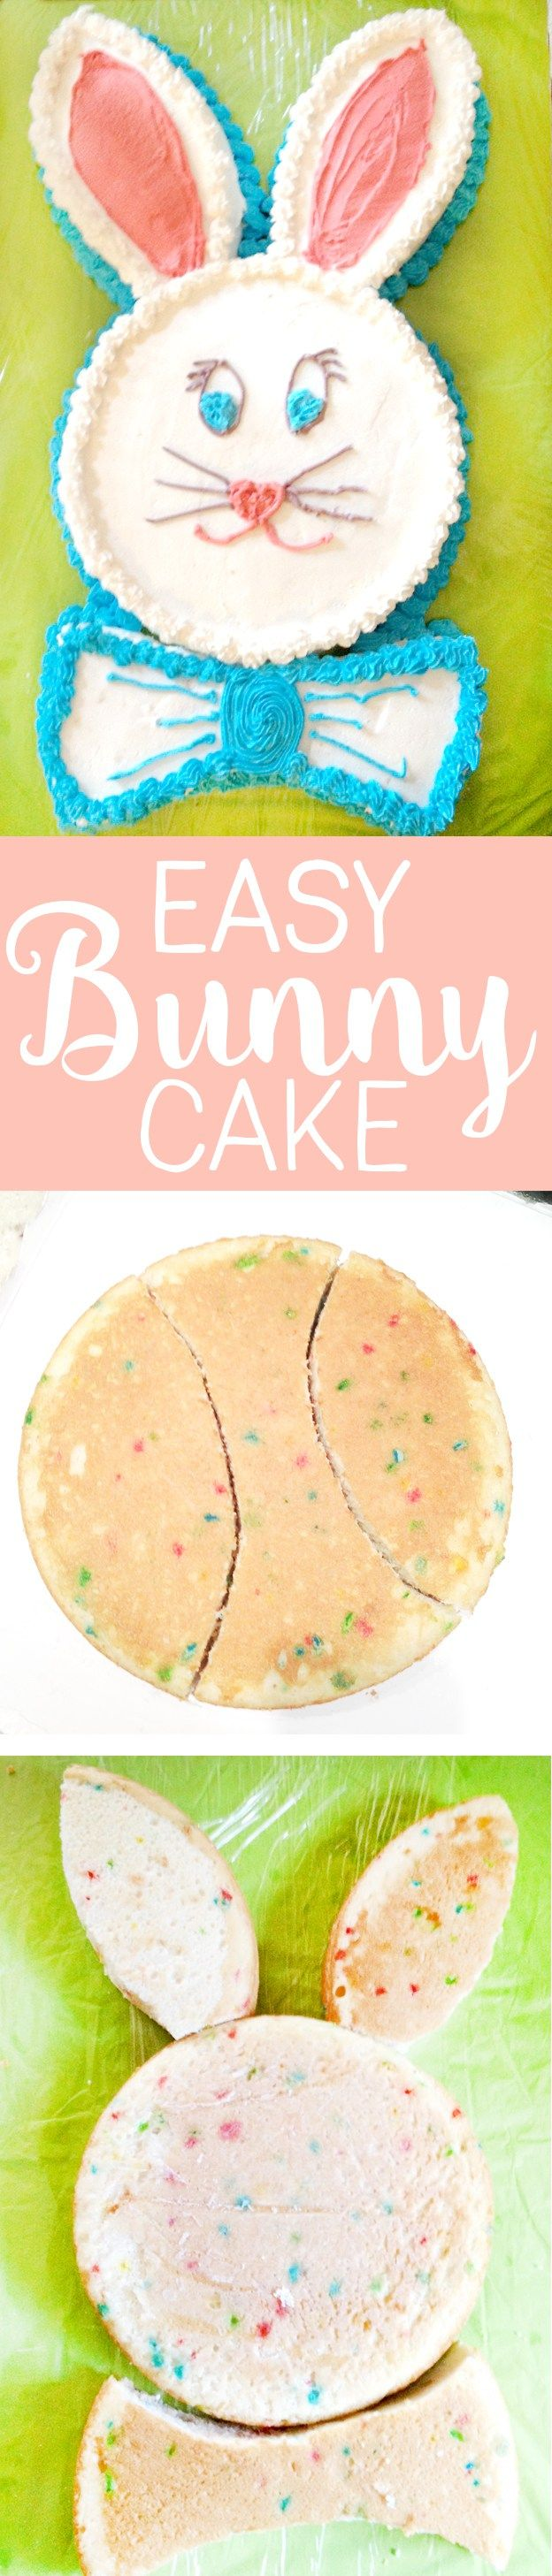 Easy Bunny Cake! Use 2 8 inch round cakes to make this super simple cake for Easter! So fun!